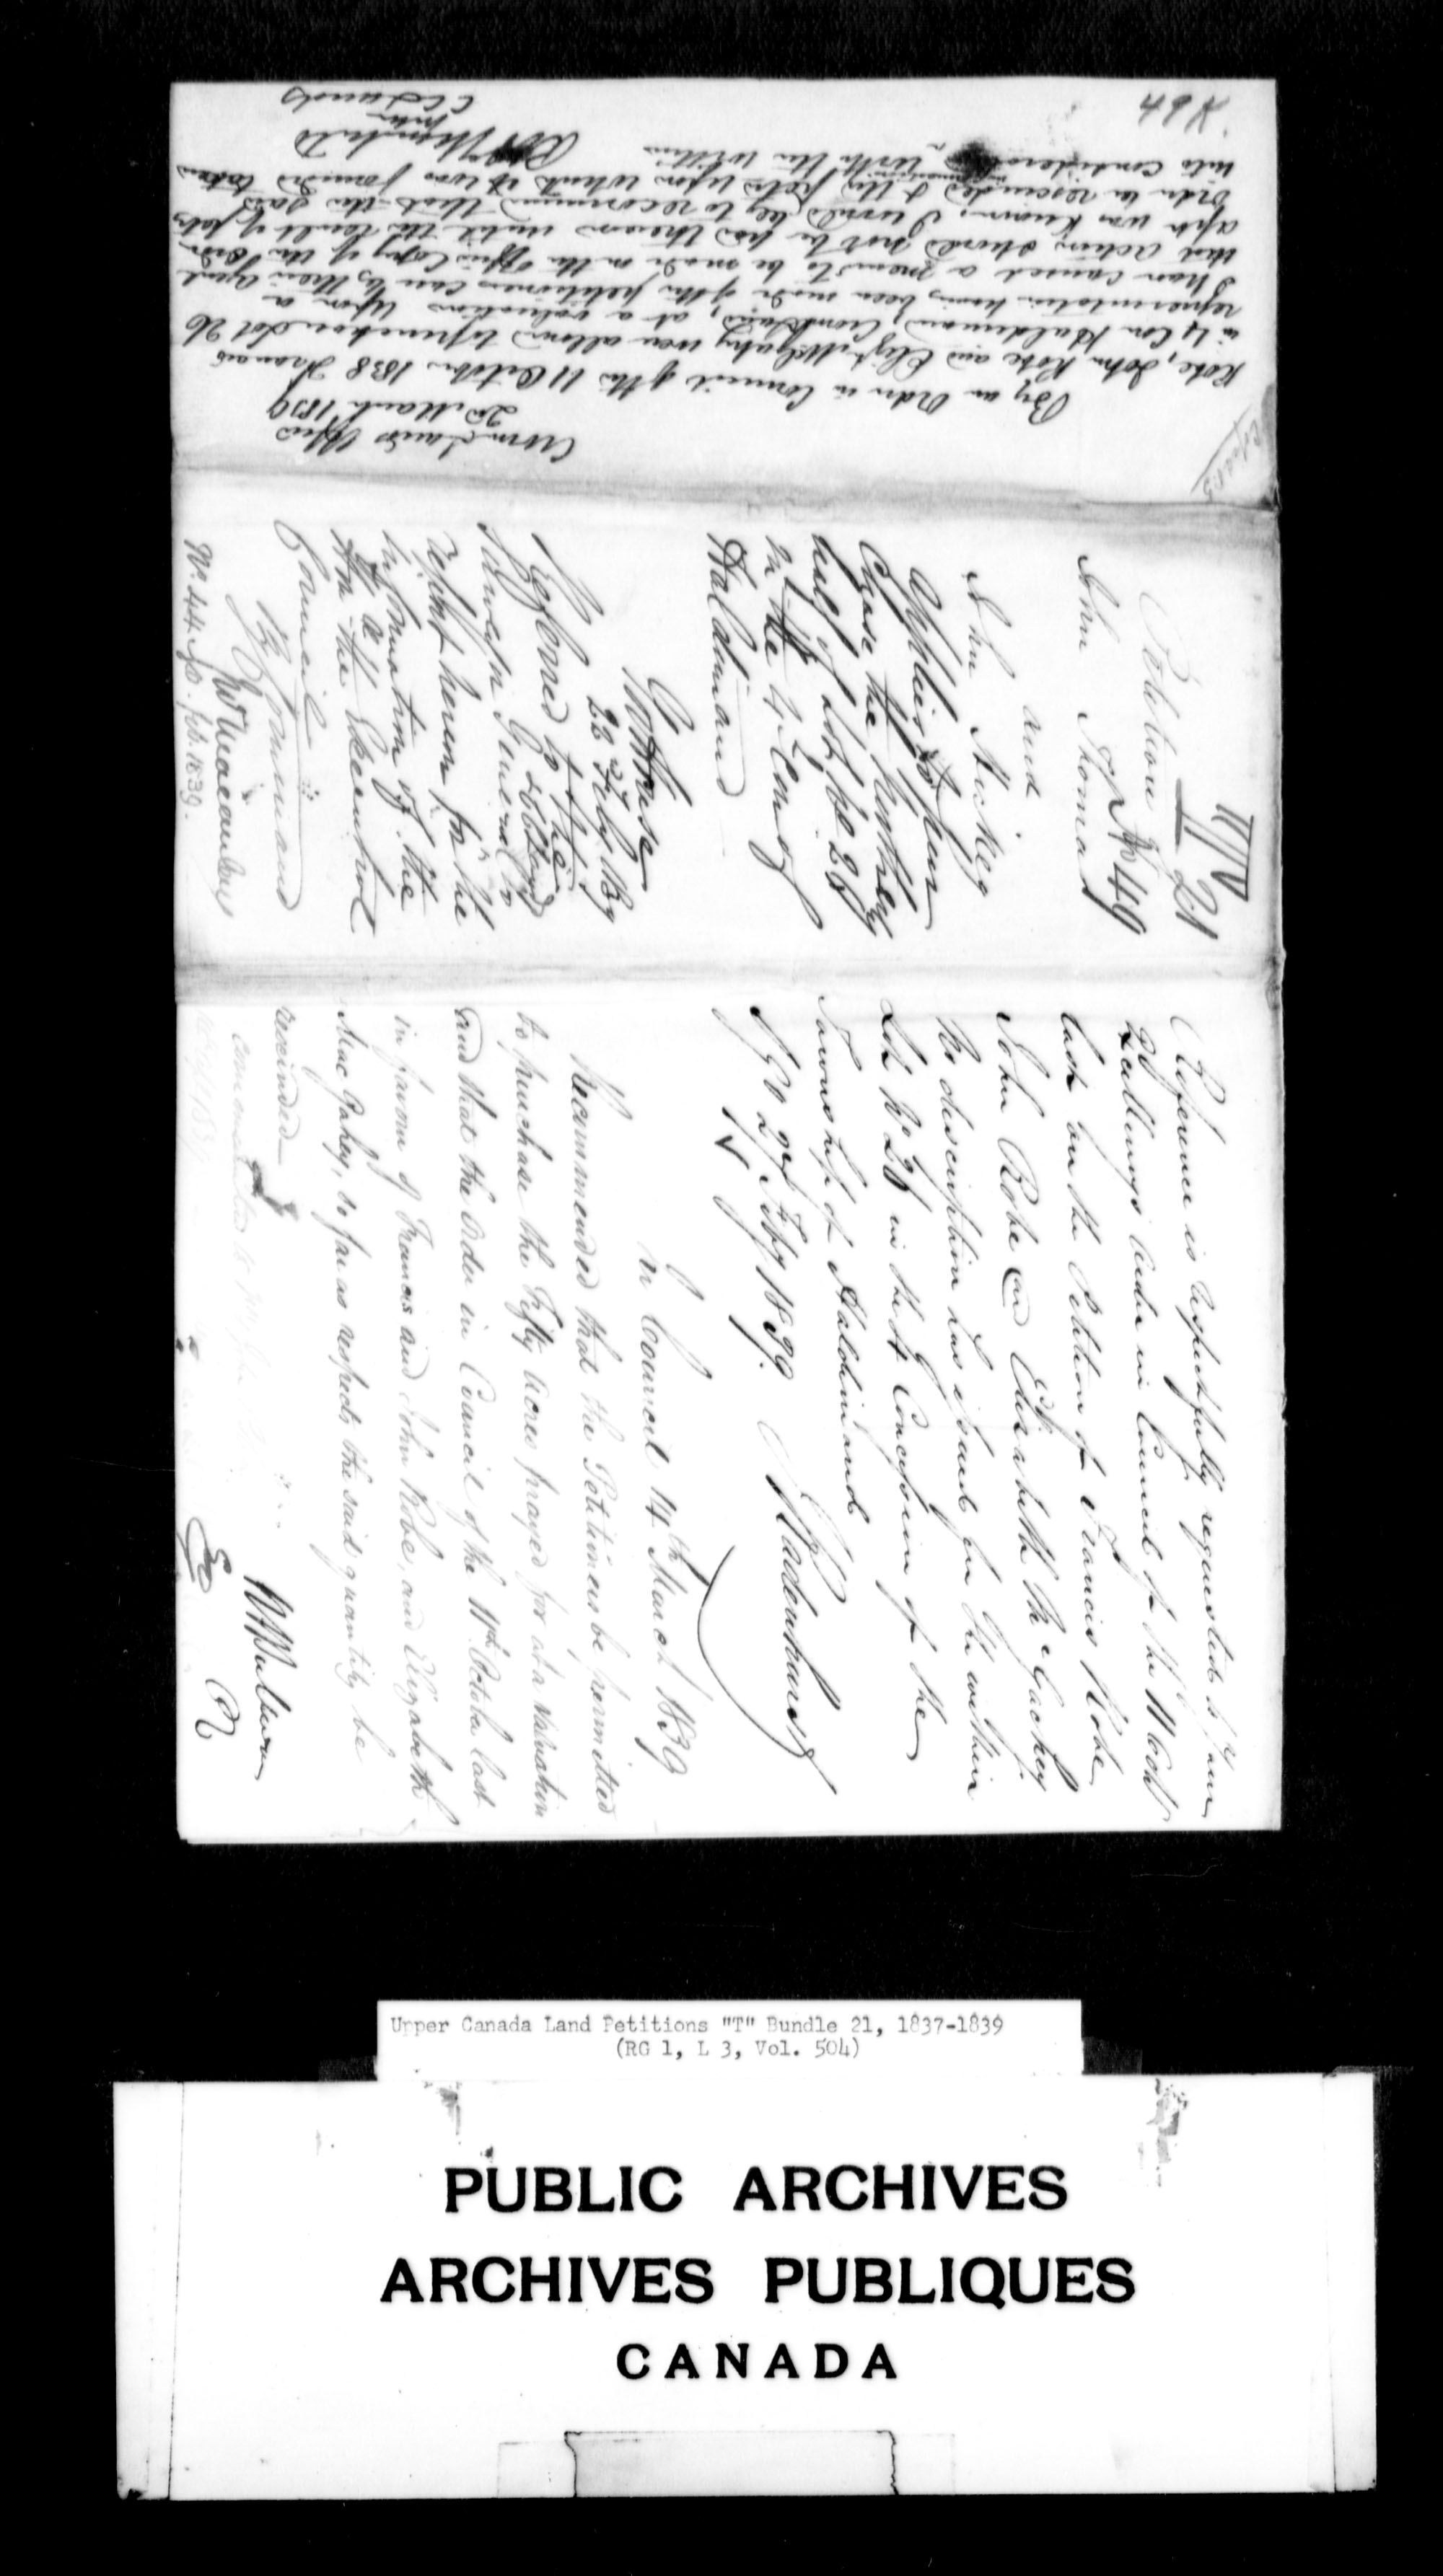 Title: Upper Canada Land Petitions (1763-1865) - Mikan Number: 205131 - Microform: c-2837